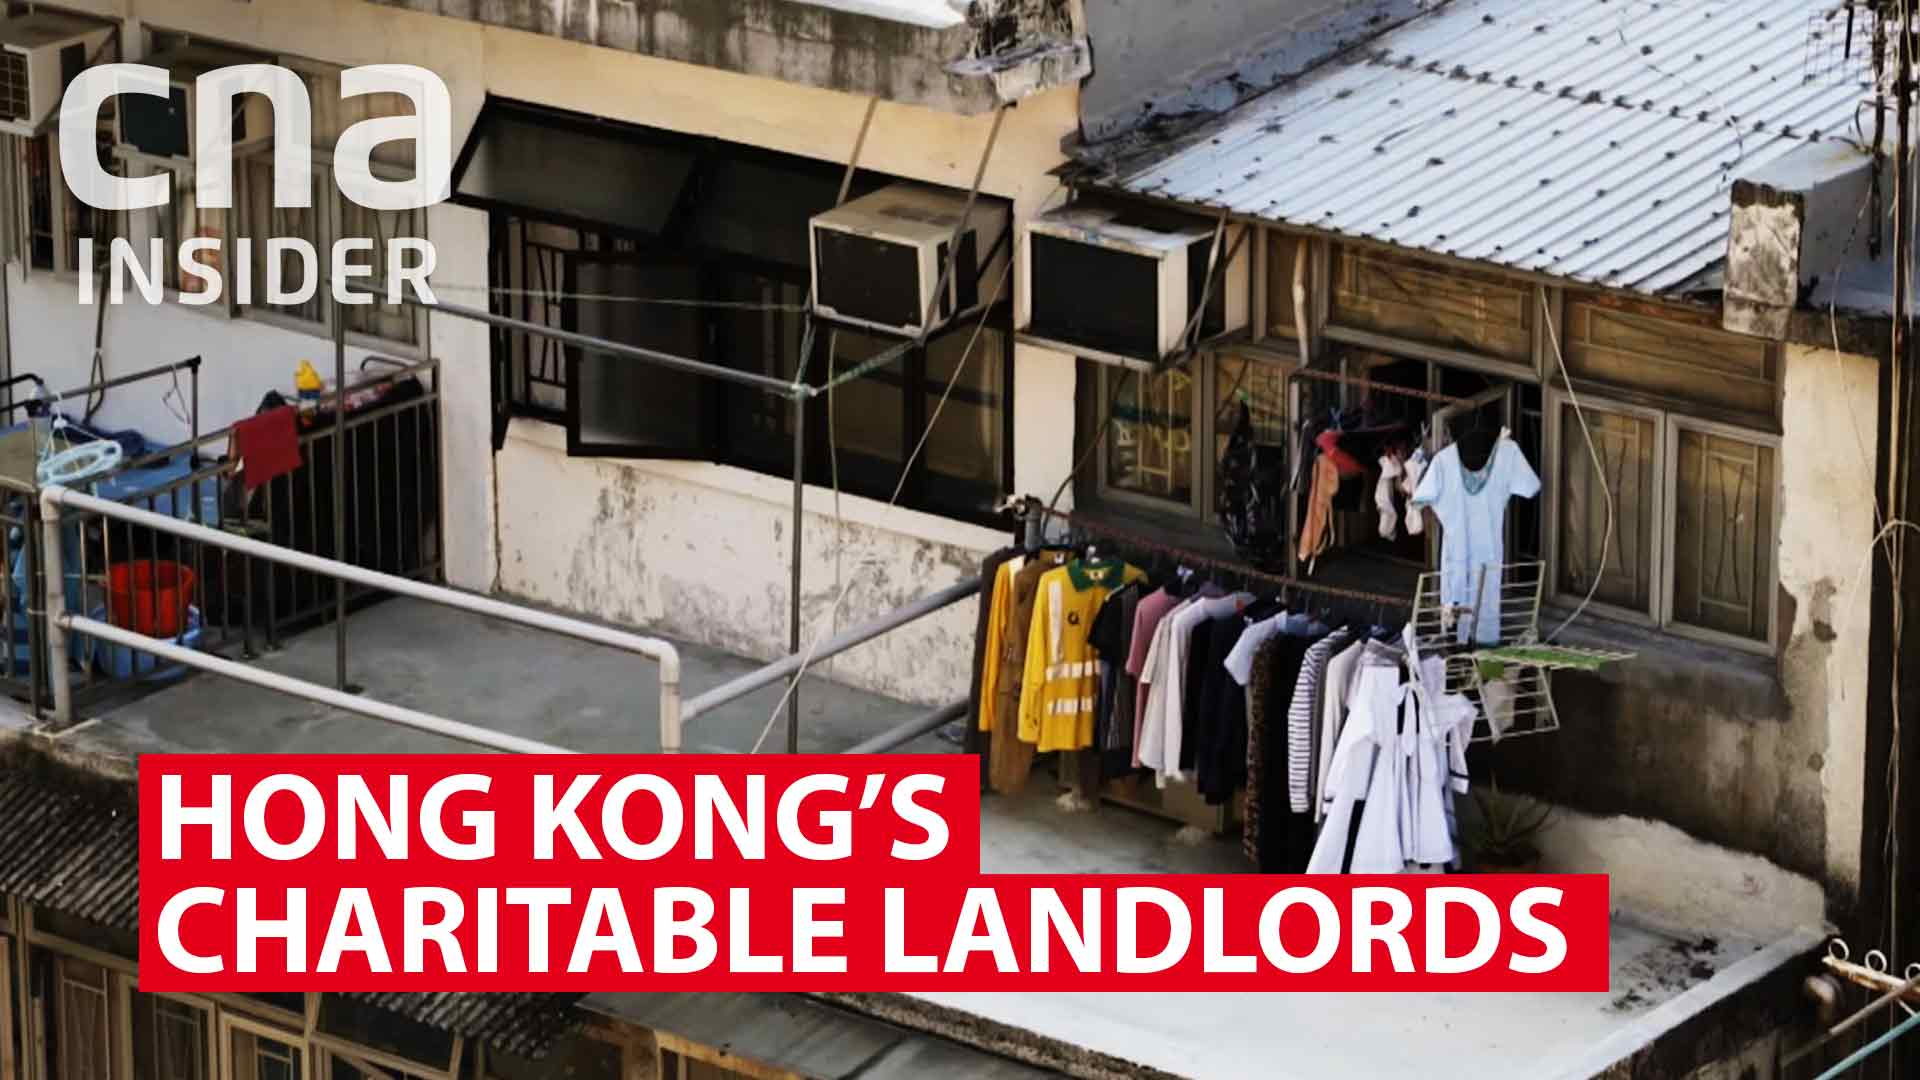 Hong Kong's charitable landlords